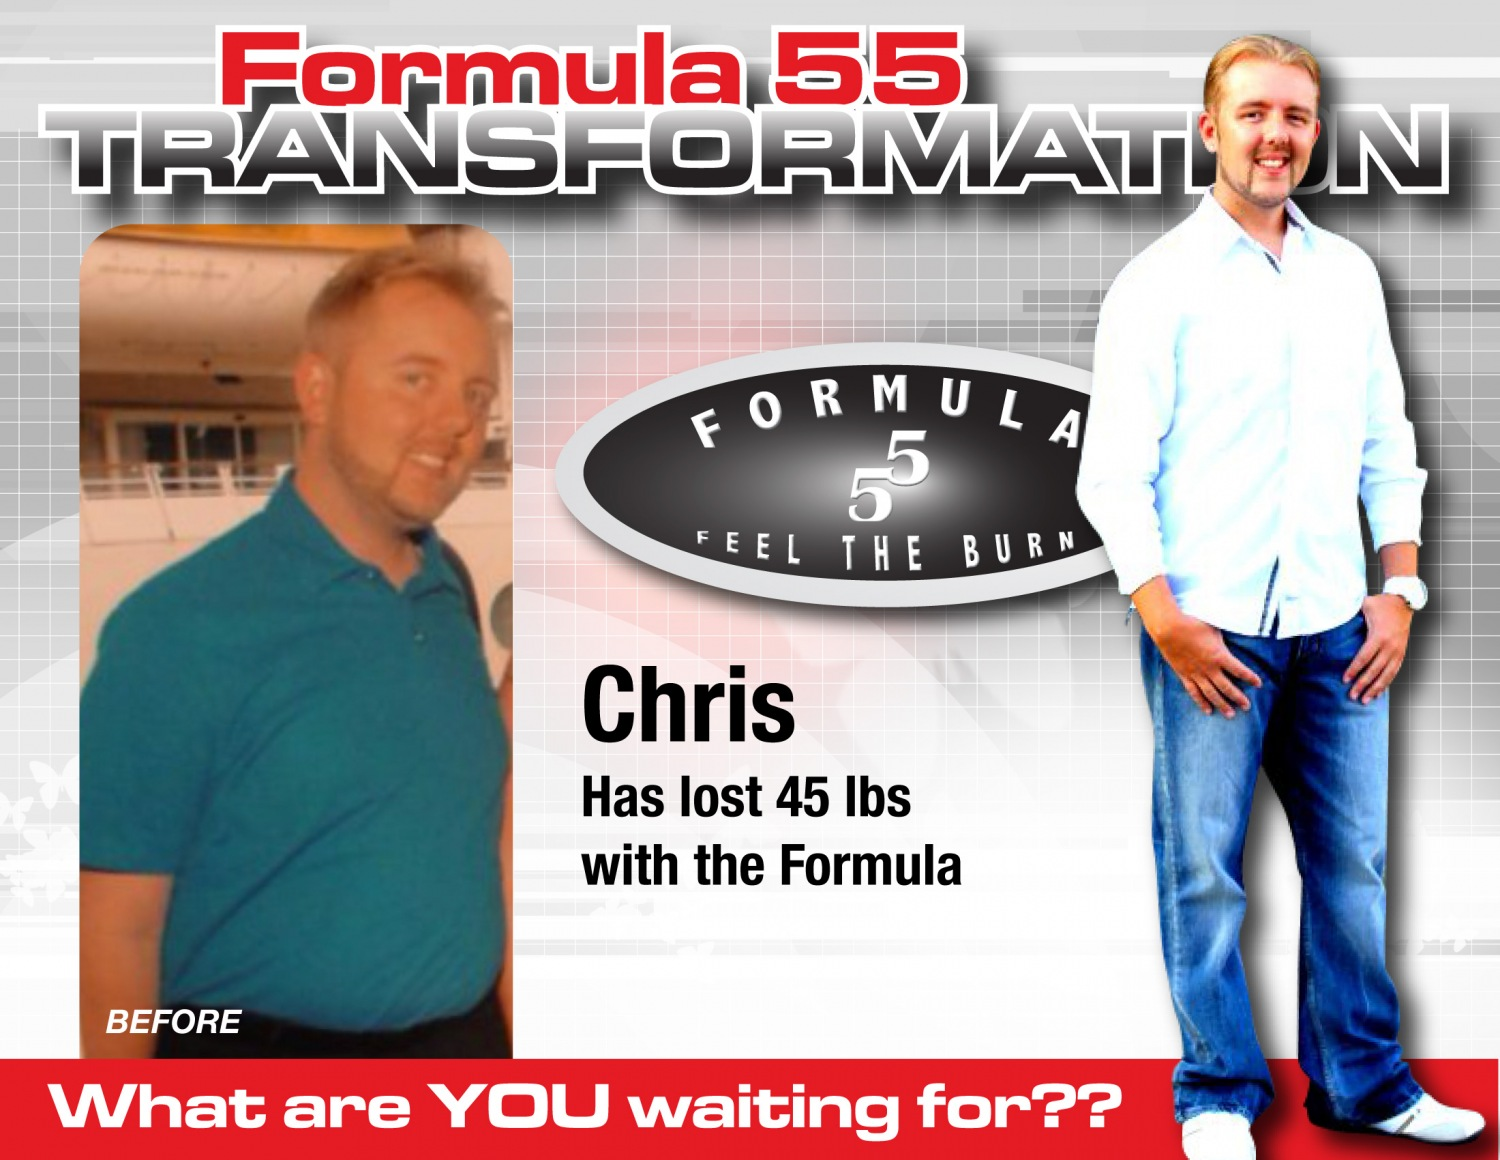 form-55-Transformation-Chris.jpg